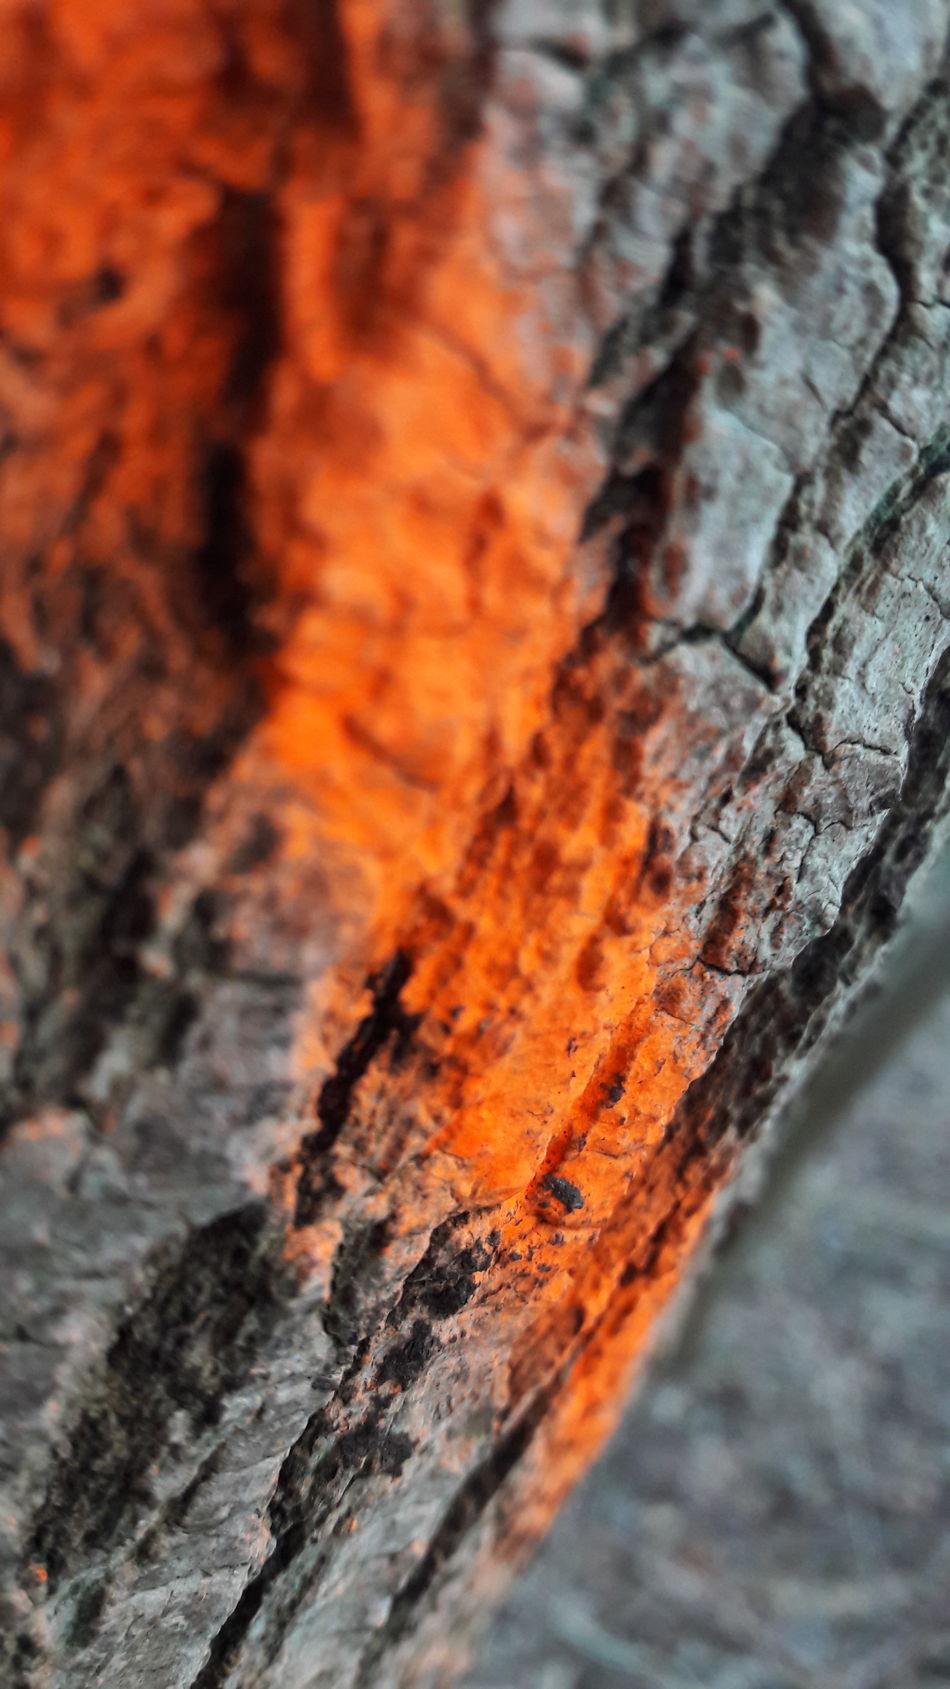 Wood - Material Close-up Textured  No People Nature Backgrounds Day Outdoors Full Frame Wood Grain No Filter Not Perfect Original Beauty In Nature Color Orange Color Focus On Foreground Nature Walking Around Enjoying Life Hohwacht Tree Tree Trunk Timber Tree Ring